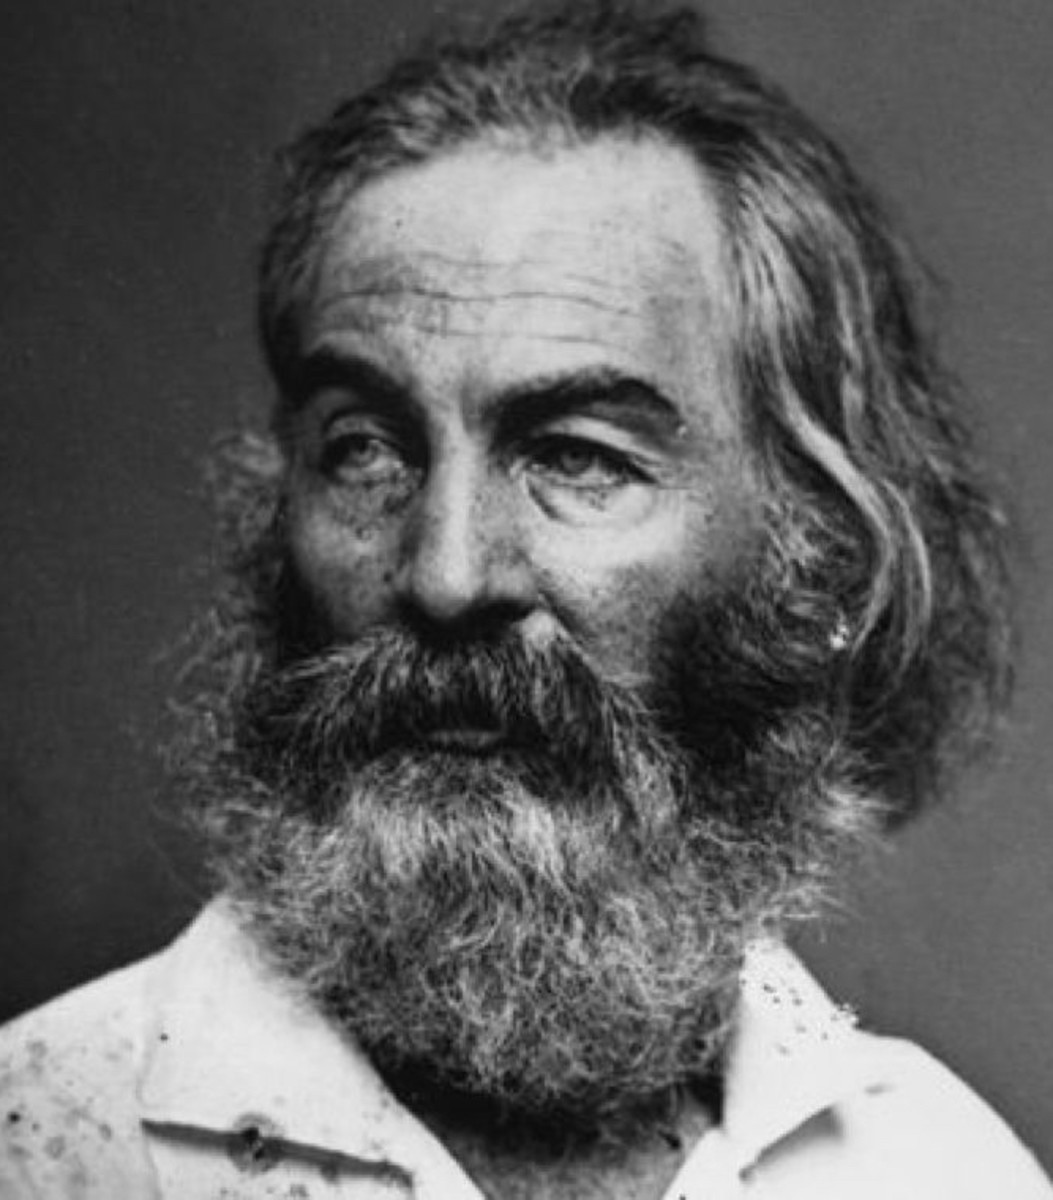 a biography of the life and times of walt whitman An engrossing dual biography that uses recently opened vatican archives to  shed light on two men who exercised nearly absolute power over their realms.